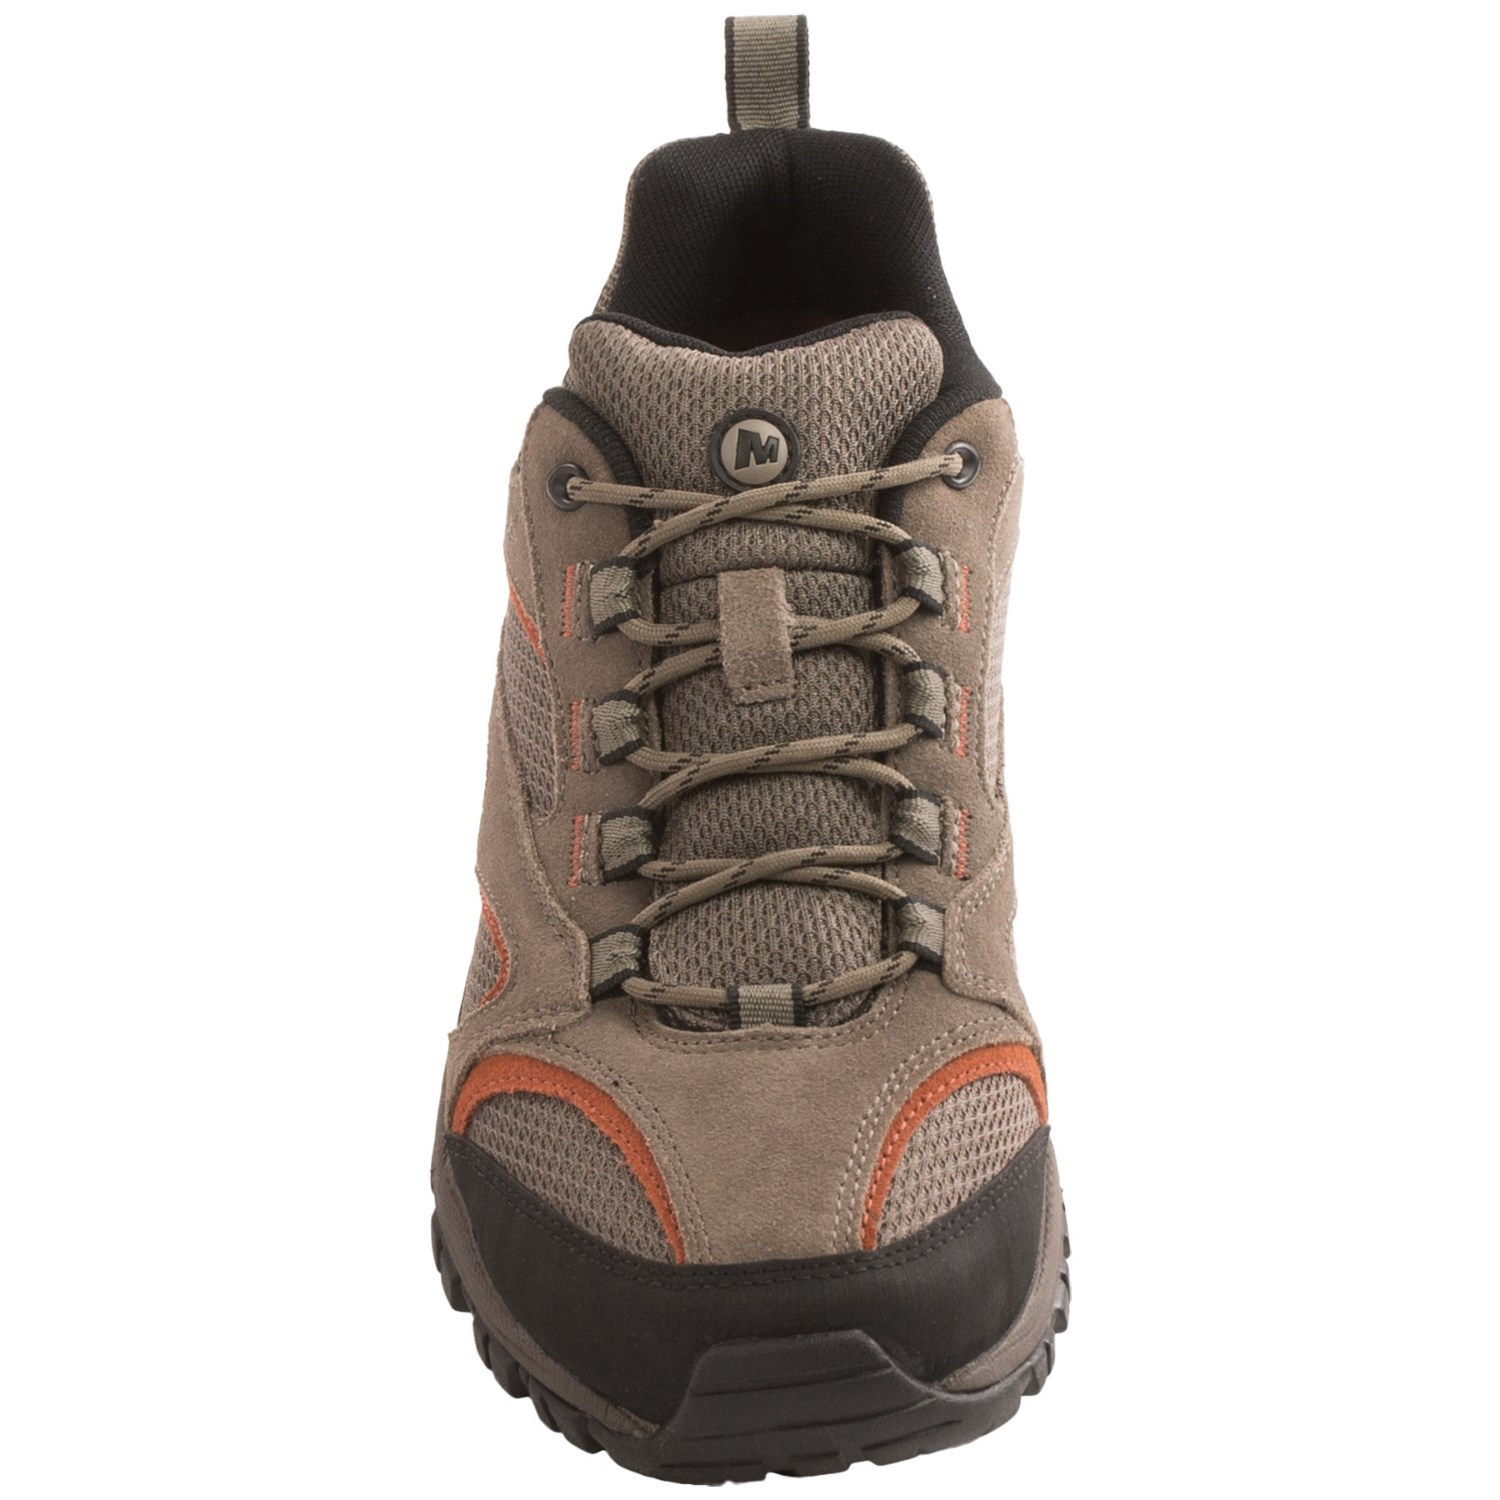 Want Something Tried and True? Experts at the Mayo Clinic agree that a pair of comfortable well-fitting walking shoes is the secret to successful walking and suggest a .